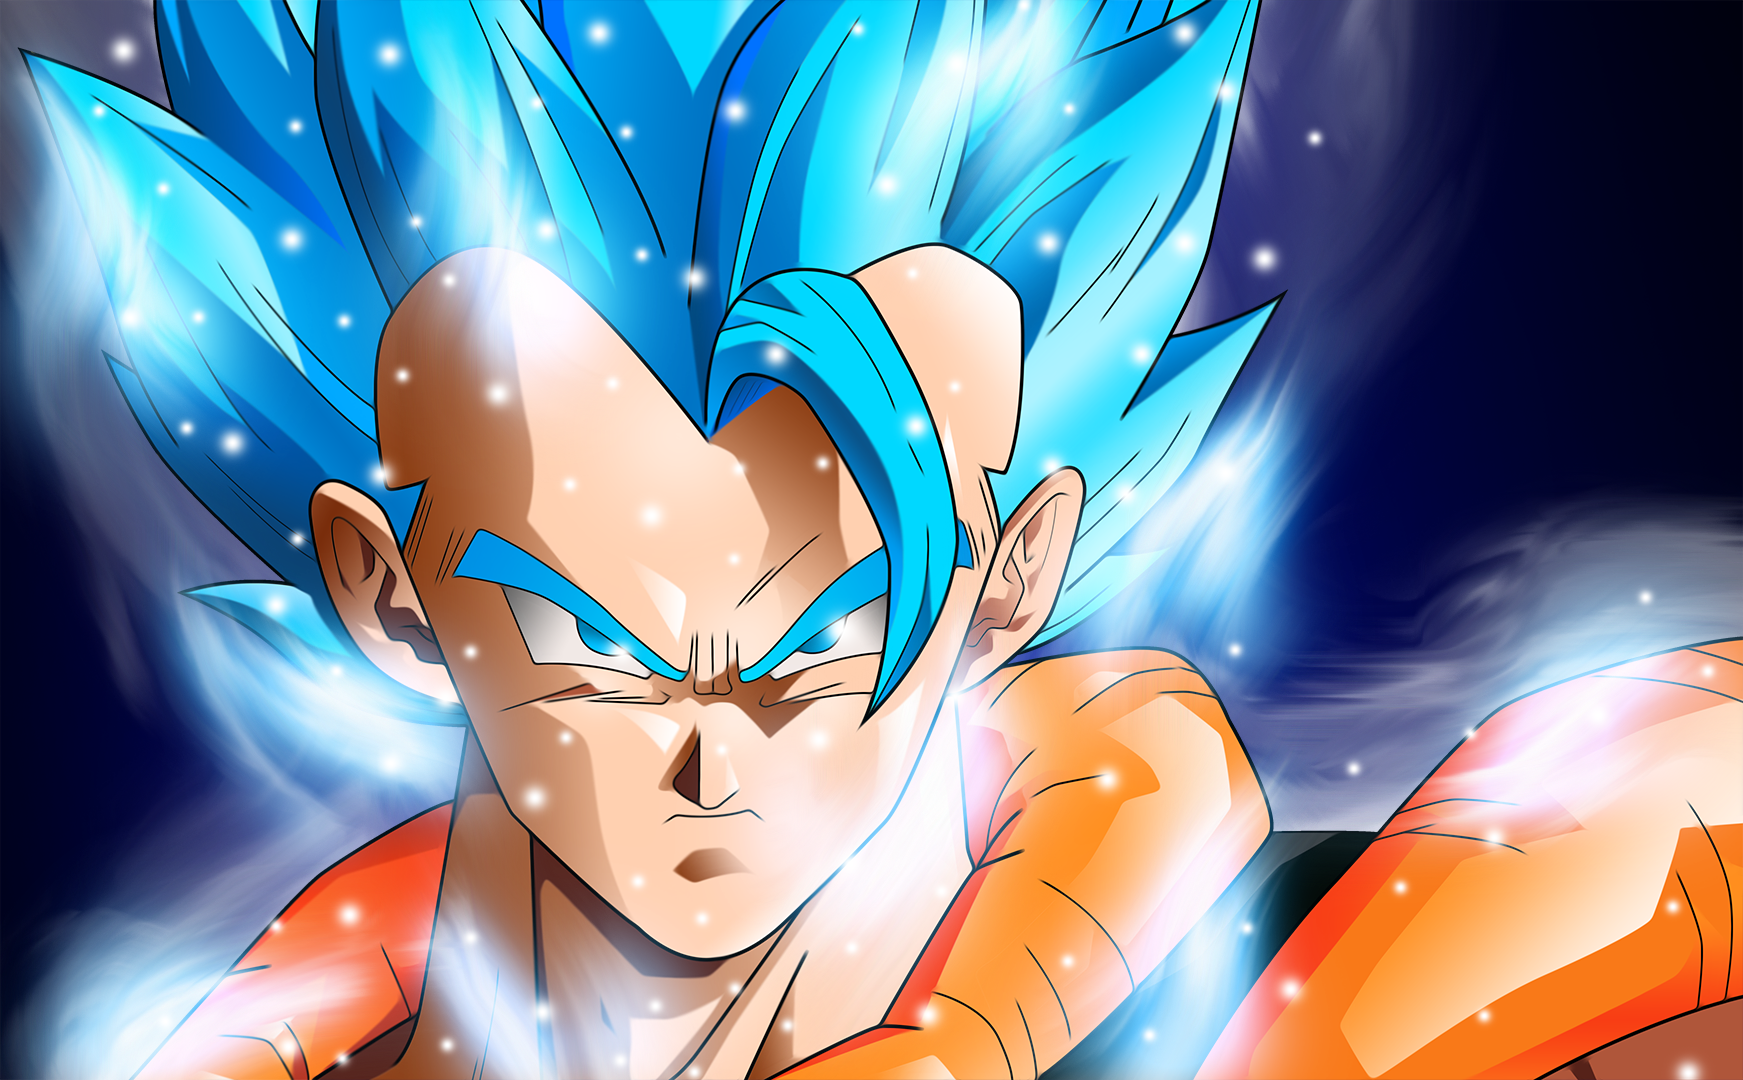 29 gogeta dragon ball hd wallpapers background images